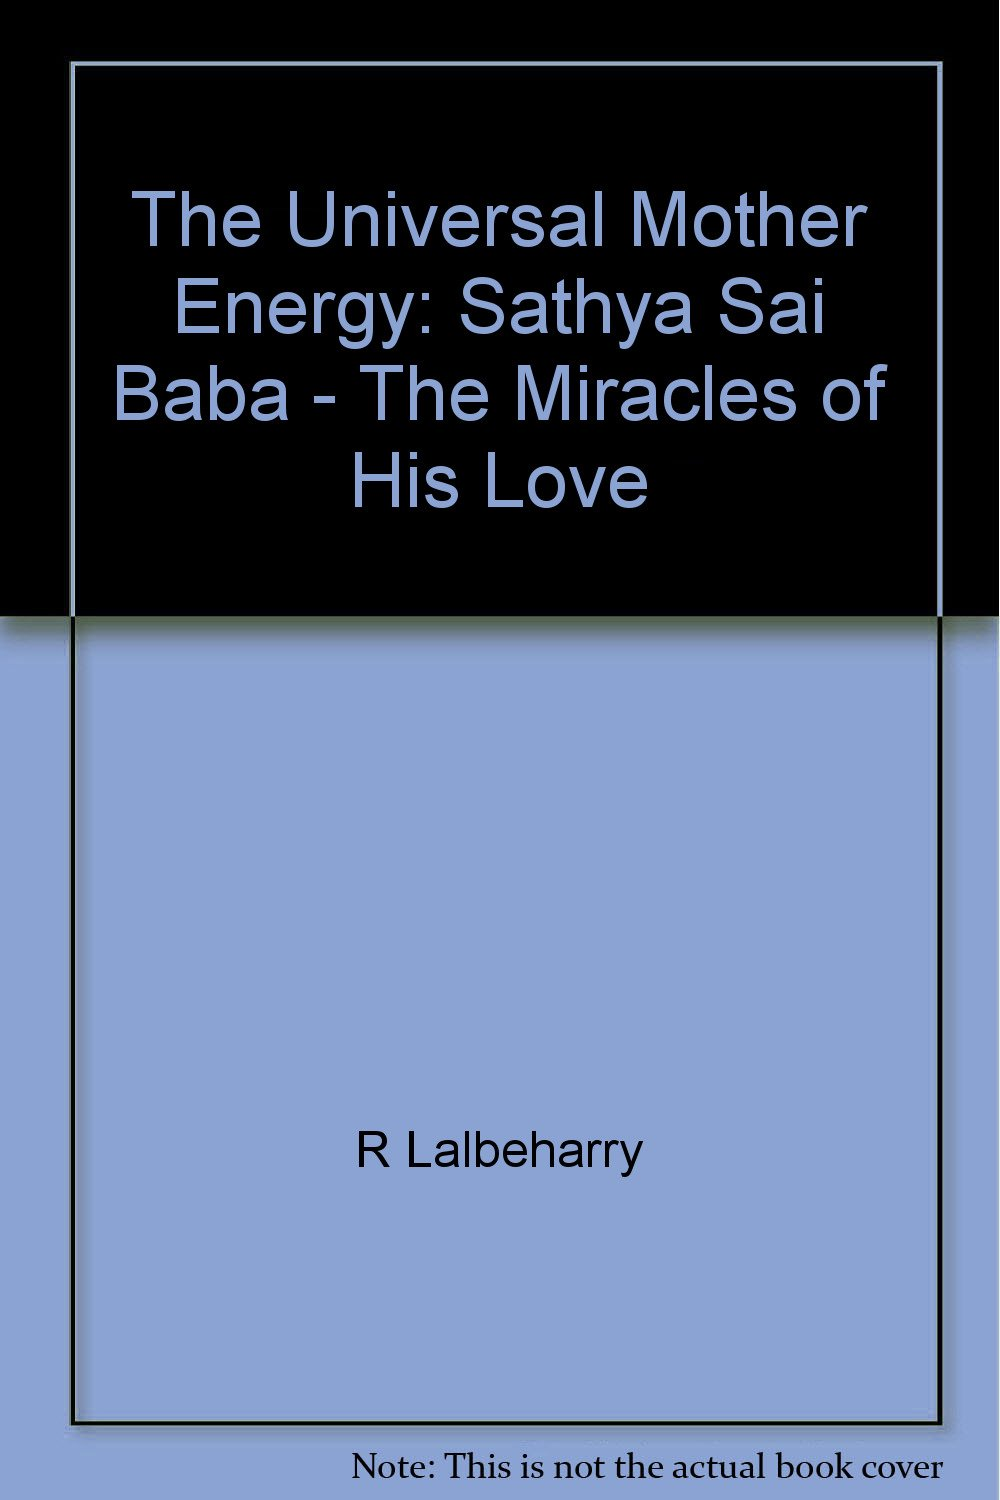 The Universal Mother Energy: Sathya Sai Baba - The Miracles